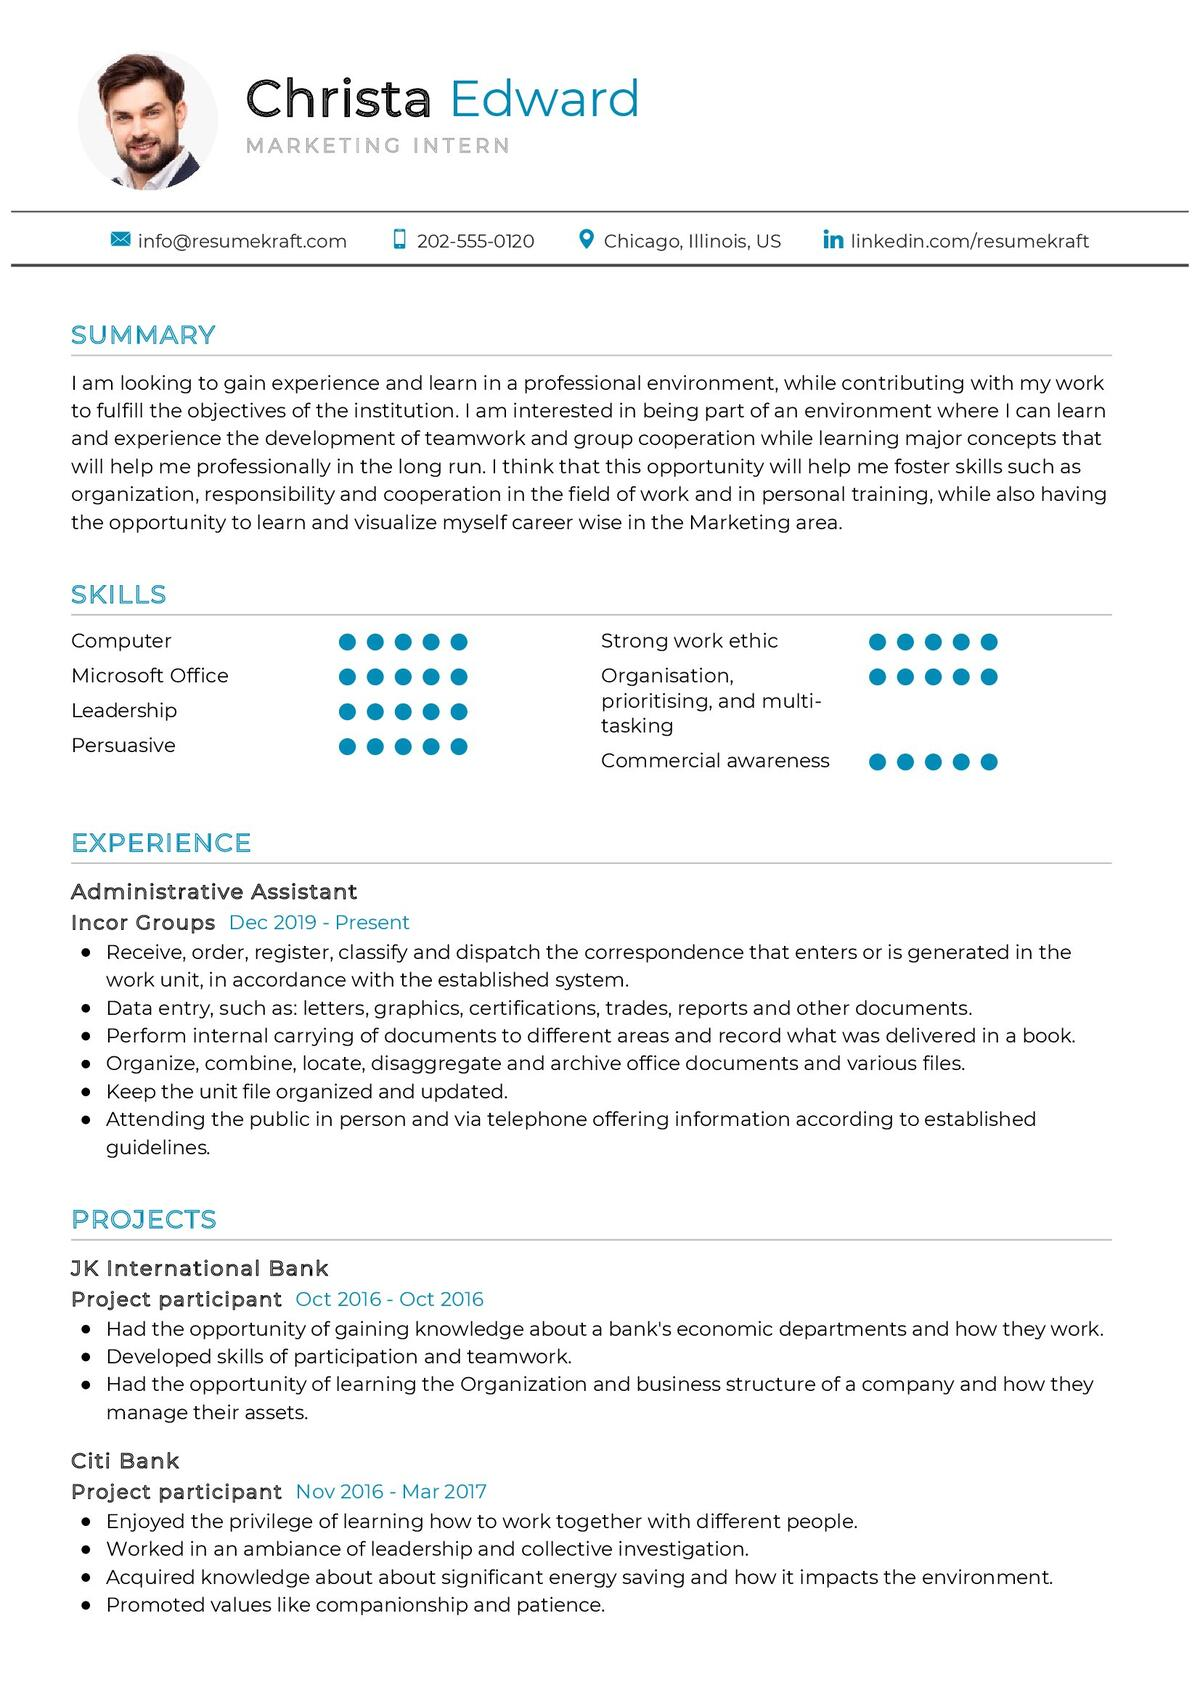 Marketing Intern Resume Sample 2